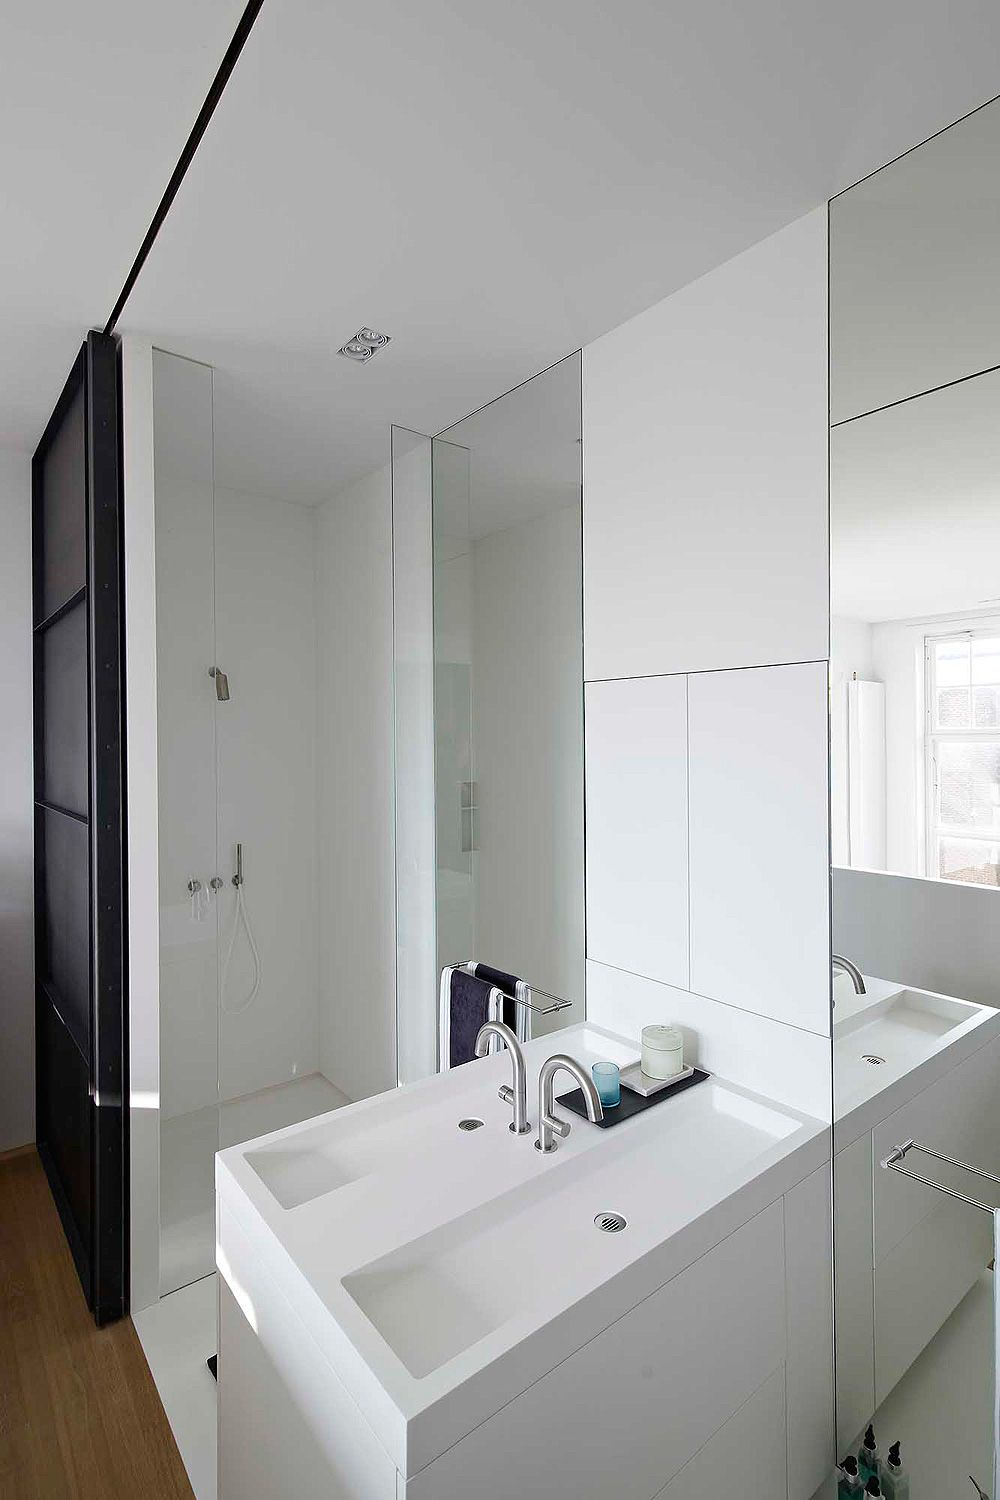 canal-house-hi-macs-witteveen-architects (5) | Bathrooms | Pinterest